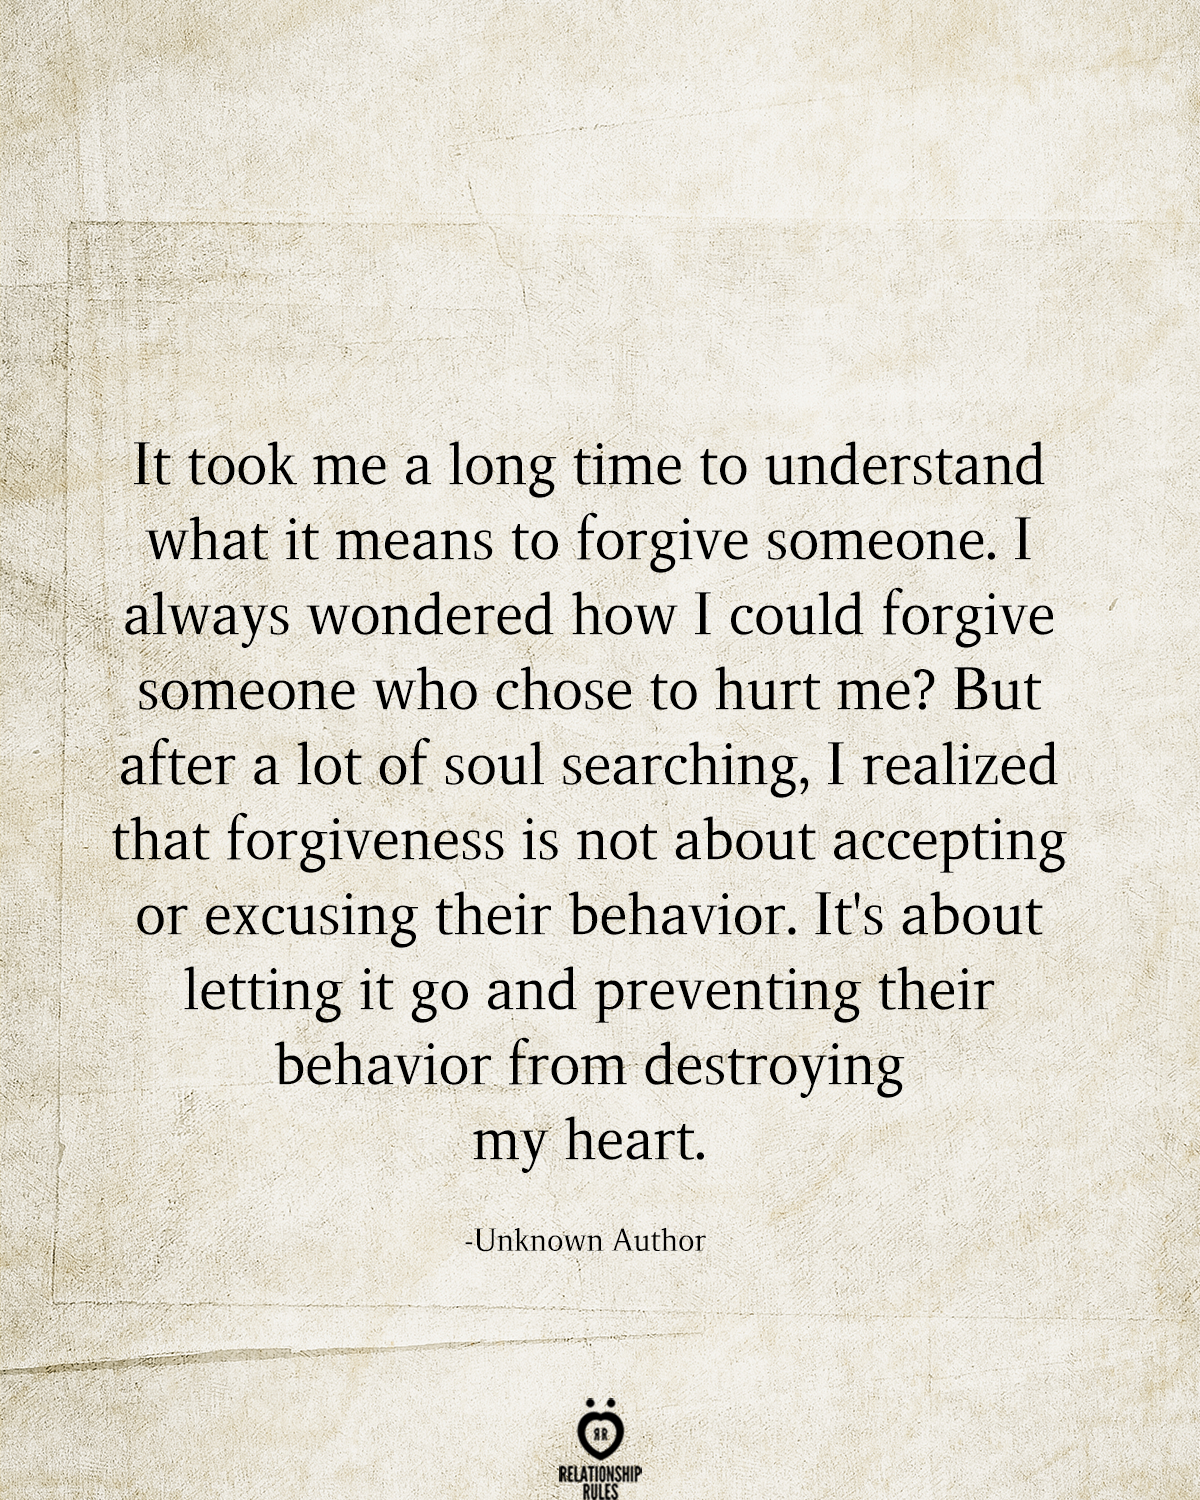 It took me a long time to understand what it means to forgive someone. I always wondered how I could forgive someone who chose to hurt me? But after a lot of soul searching, I realized that forgiveness is not about accepting or excusing their behavior. It's about letting it go and preventing their behavior from destroying my heart.  -Unknown Author